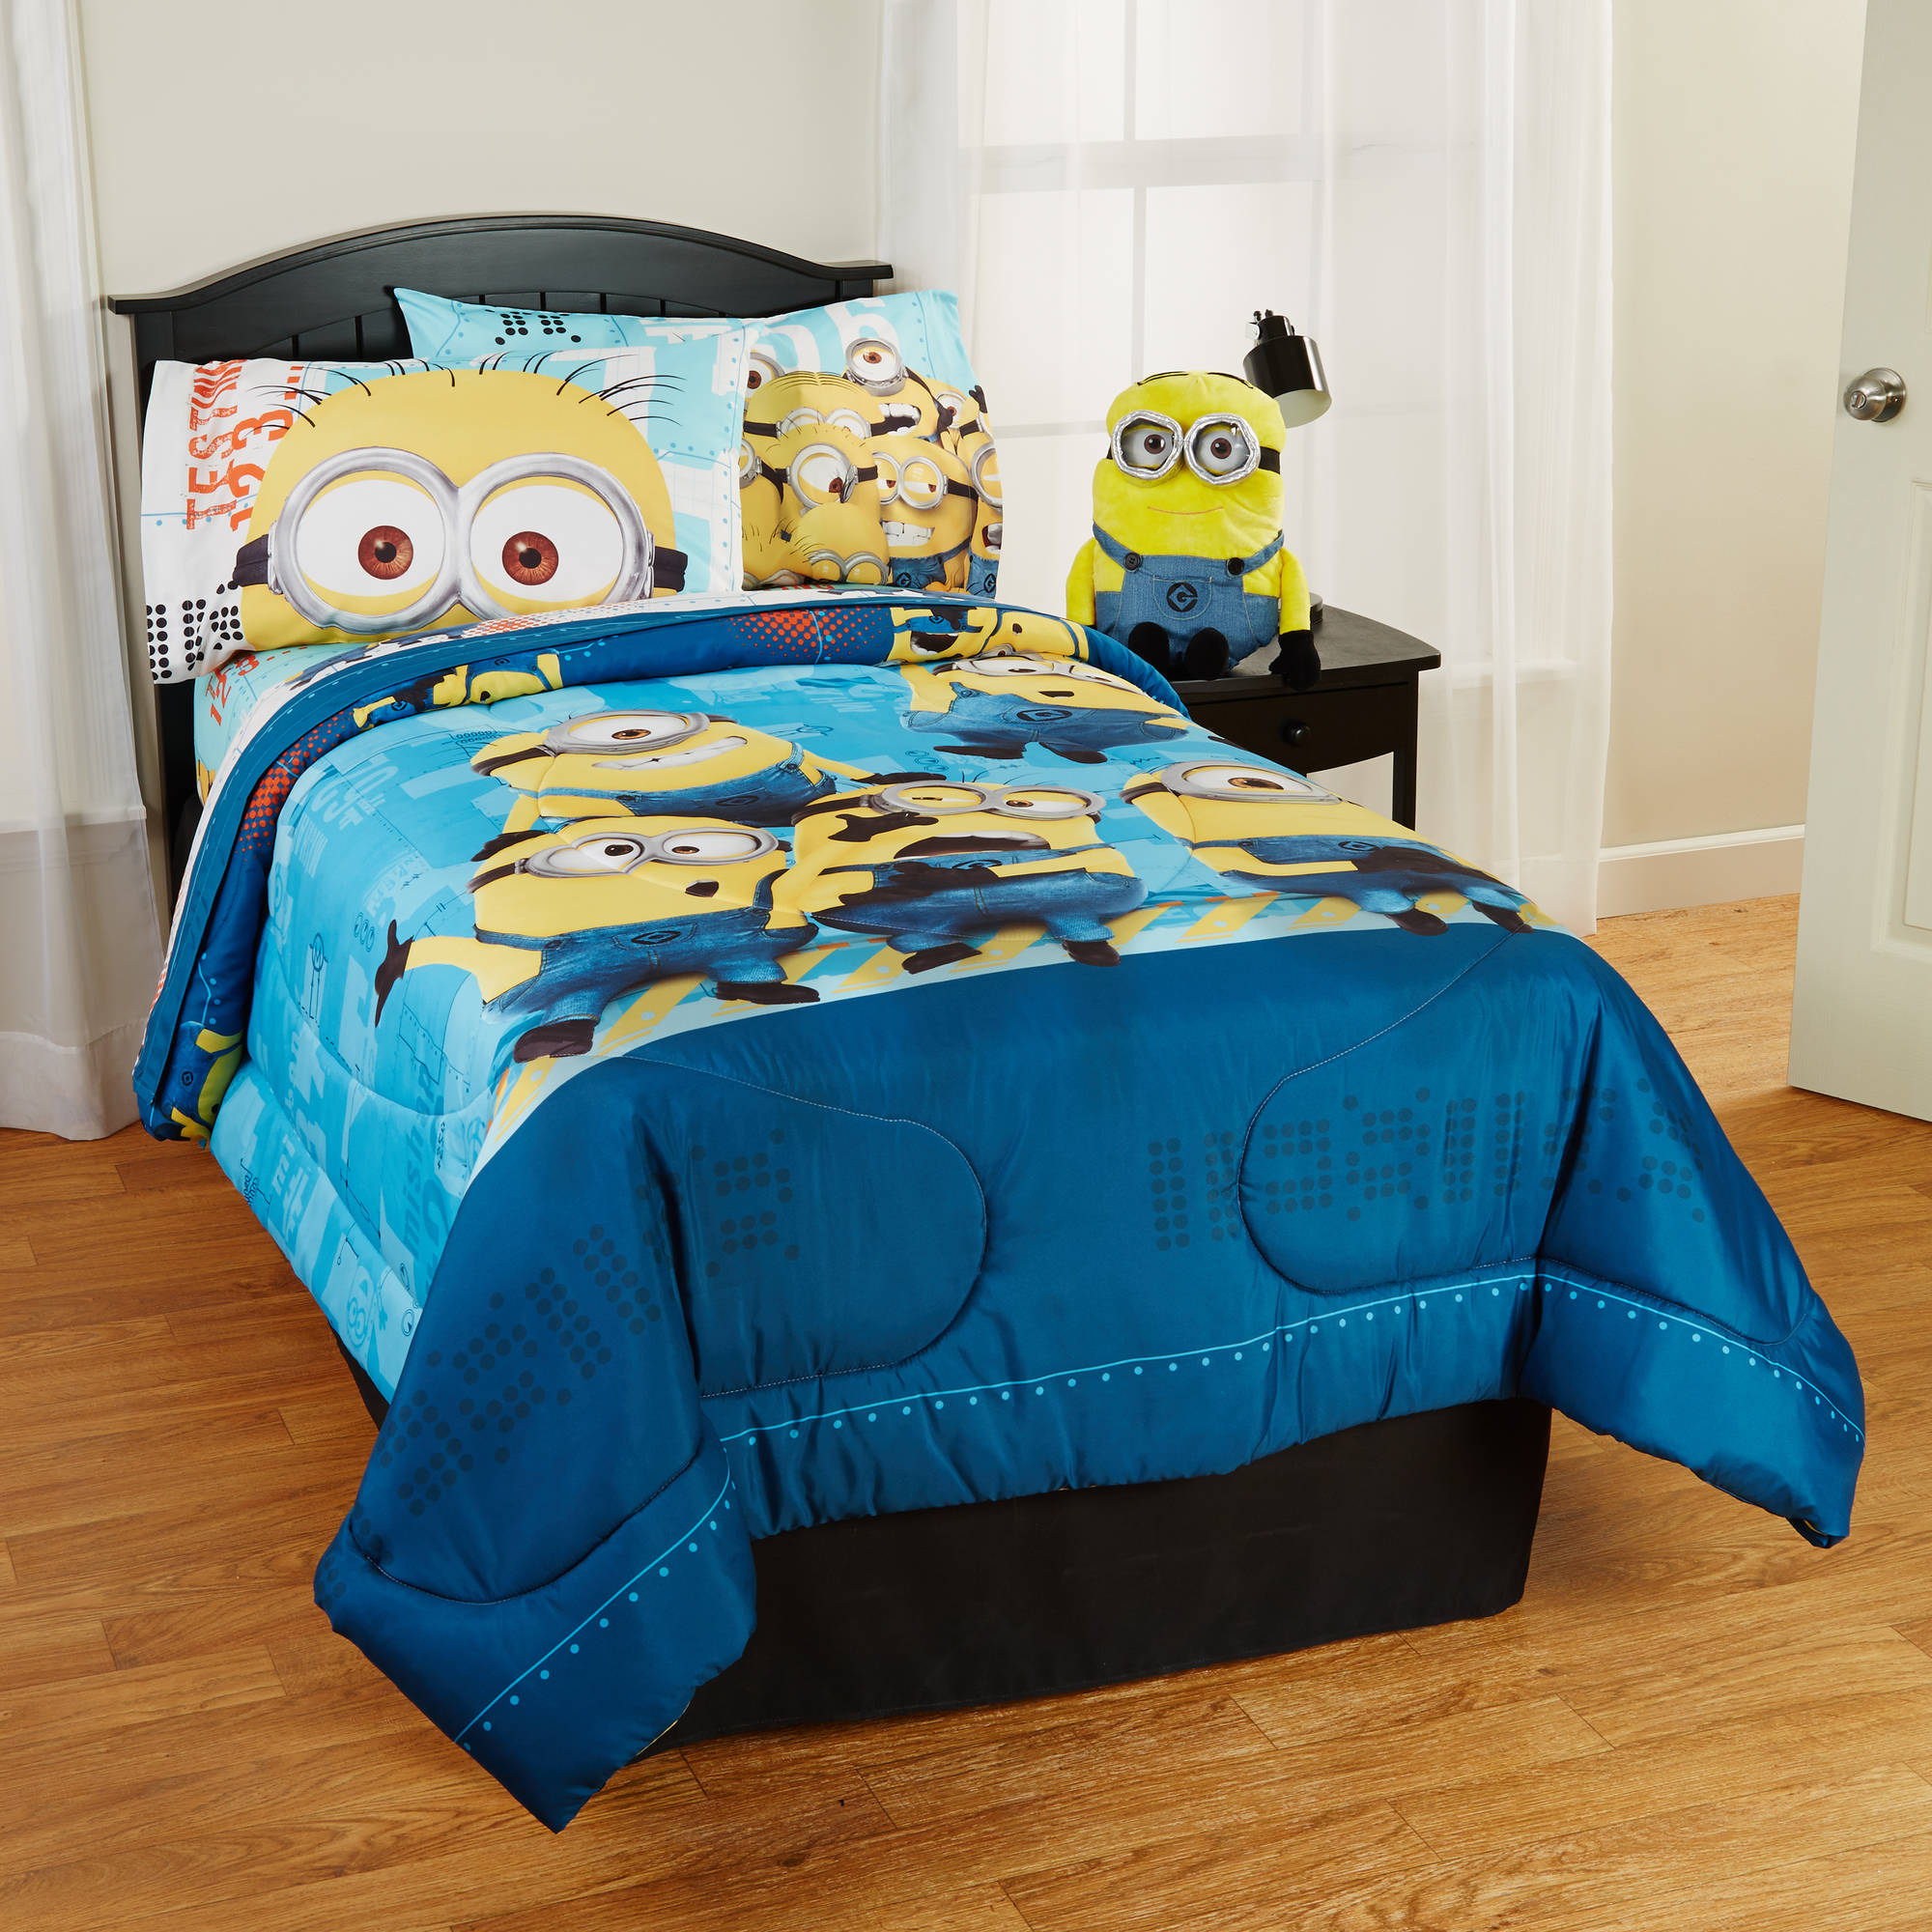 Despicable Me Minions Bedding Sheet Set, 1 Each